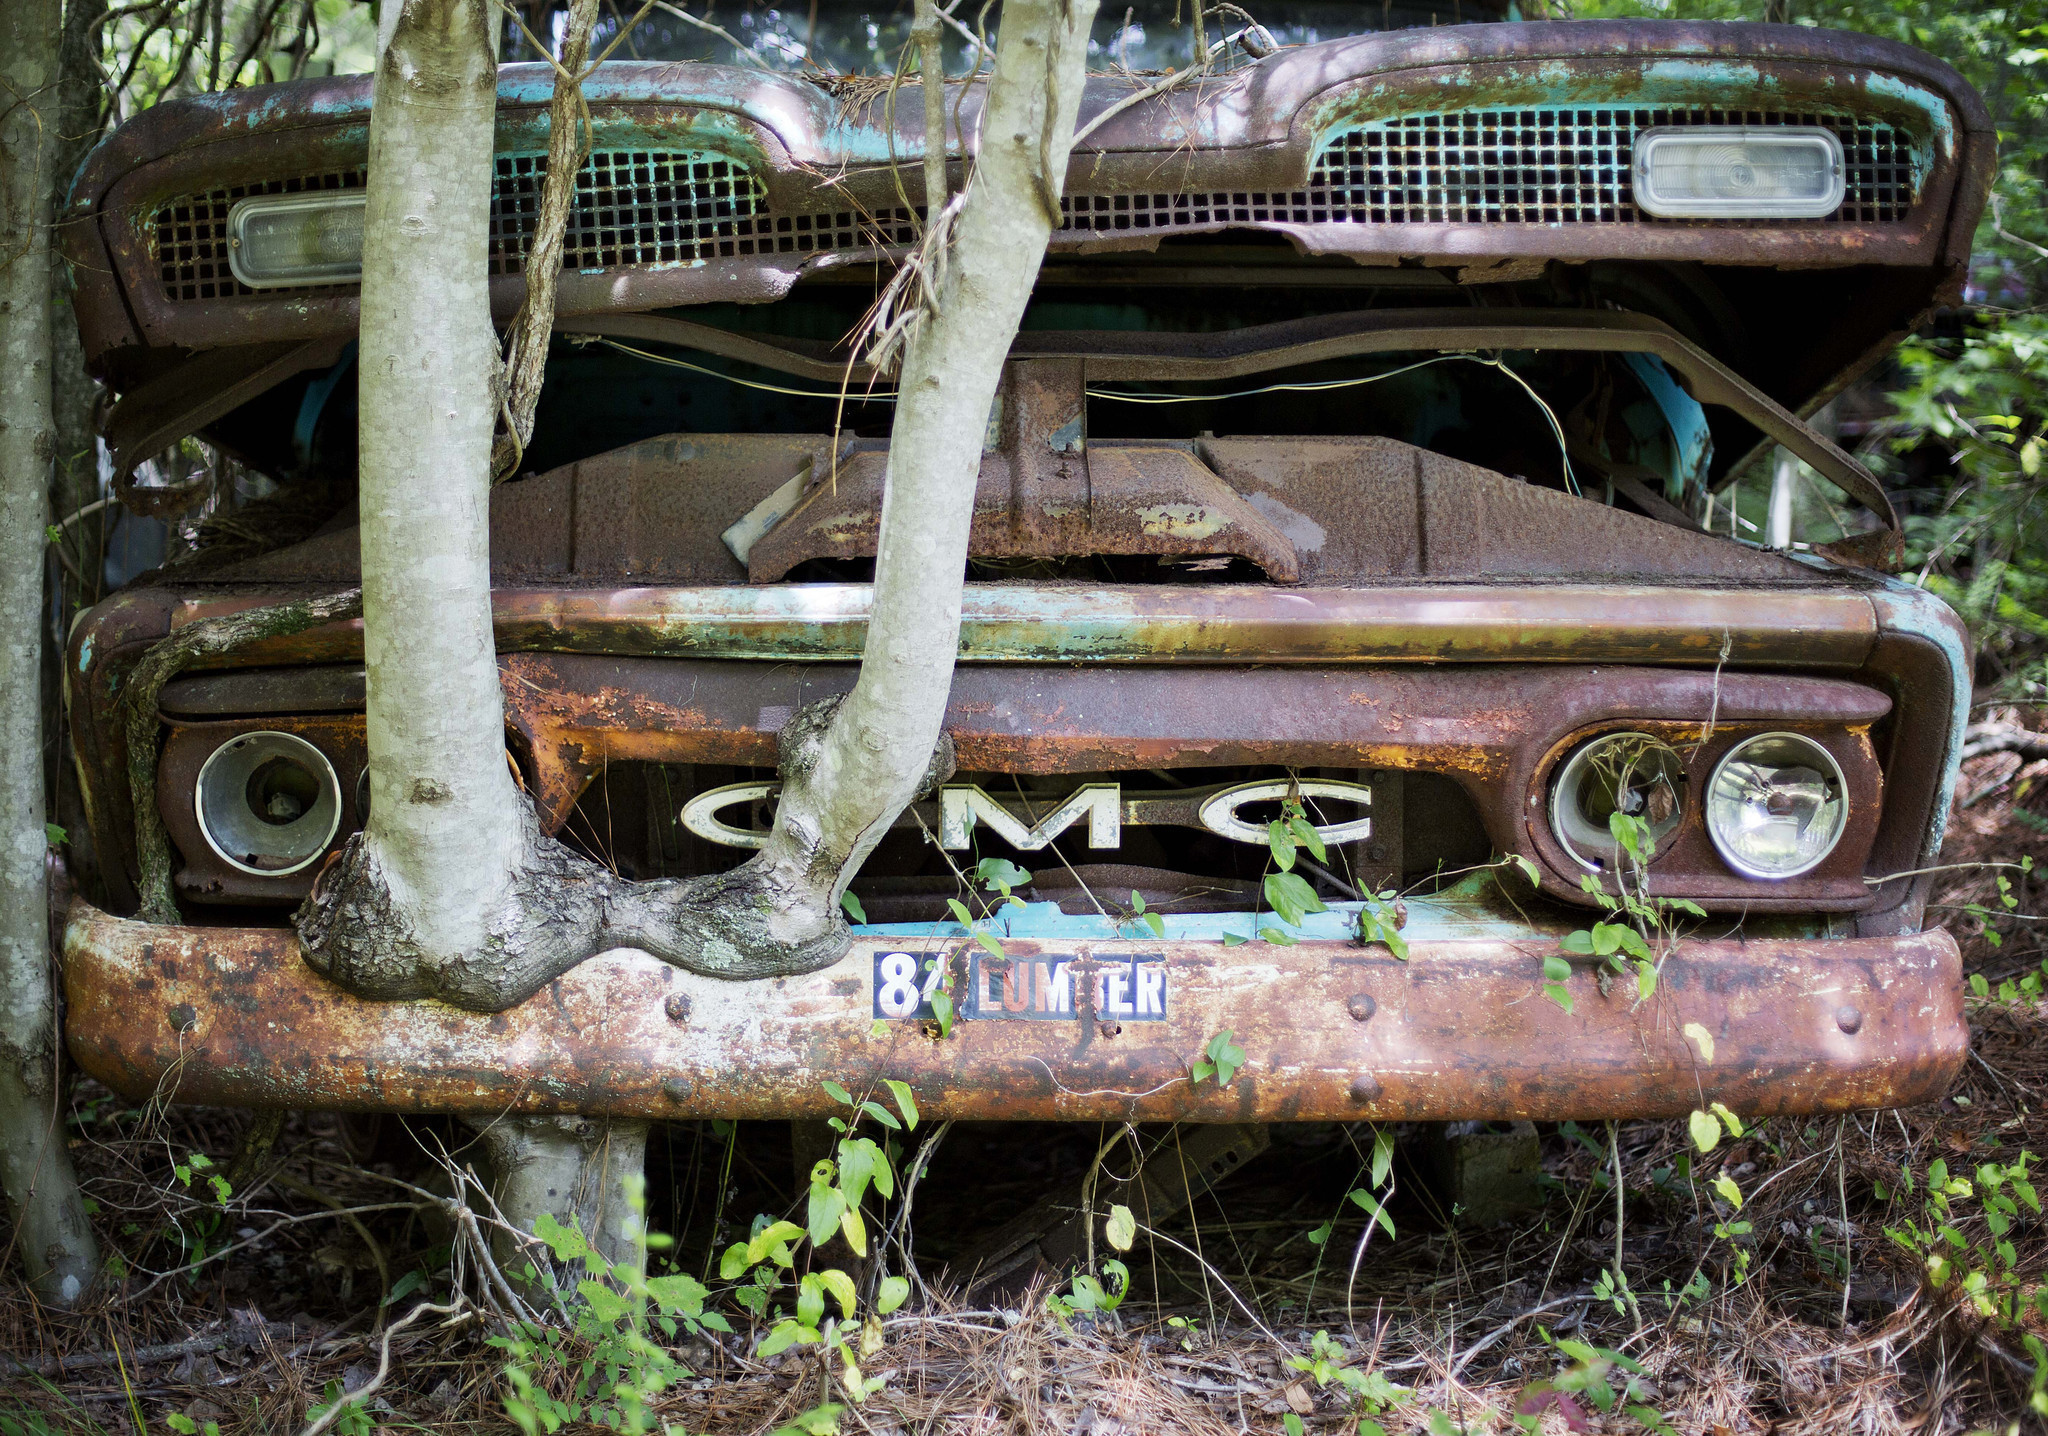 World\'s largest classic car junkyard takes root in U.S. forest ...